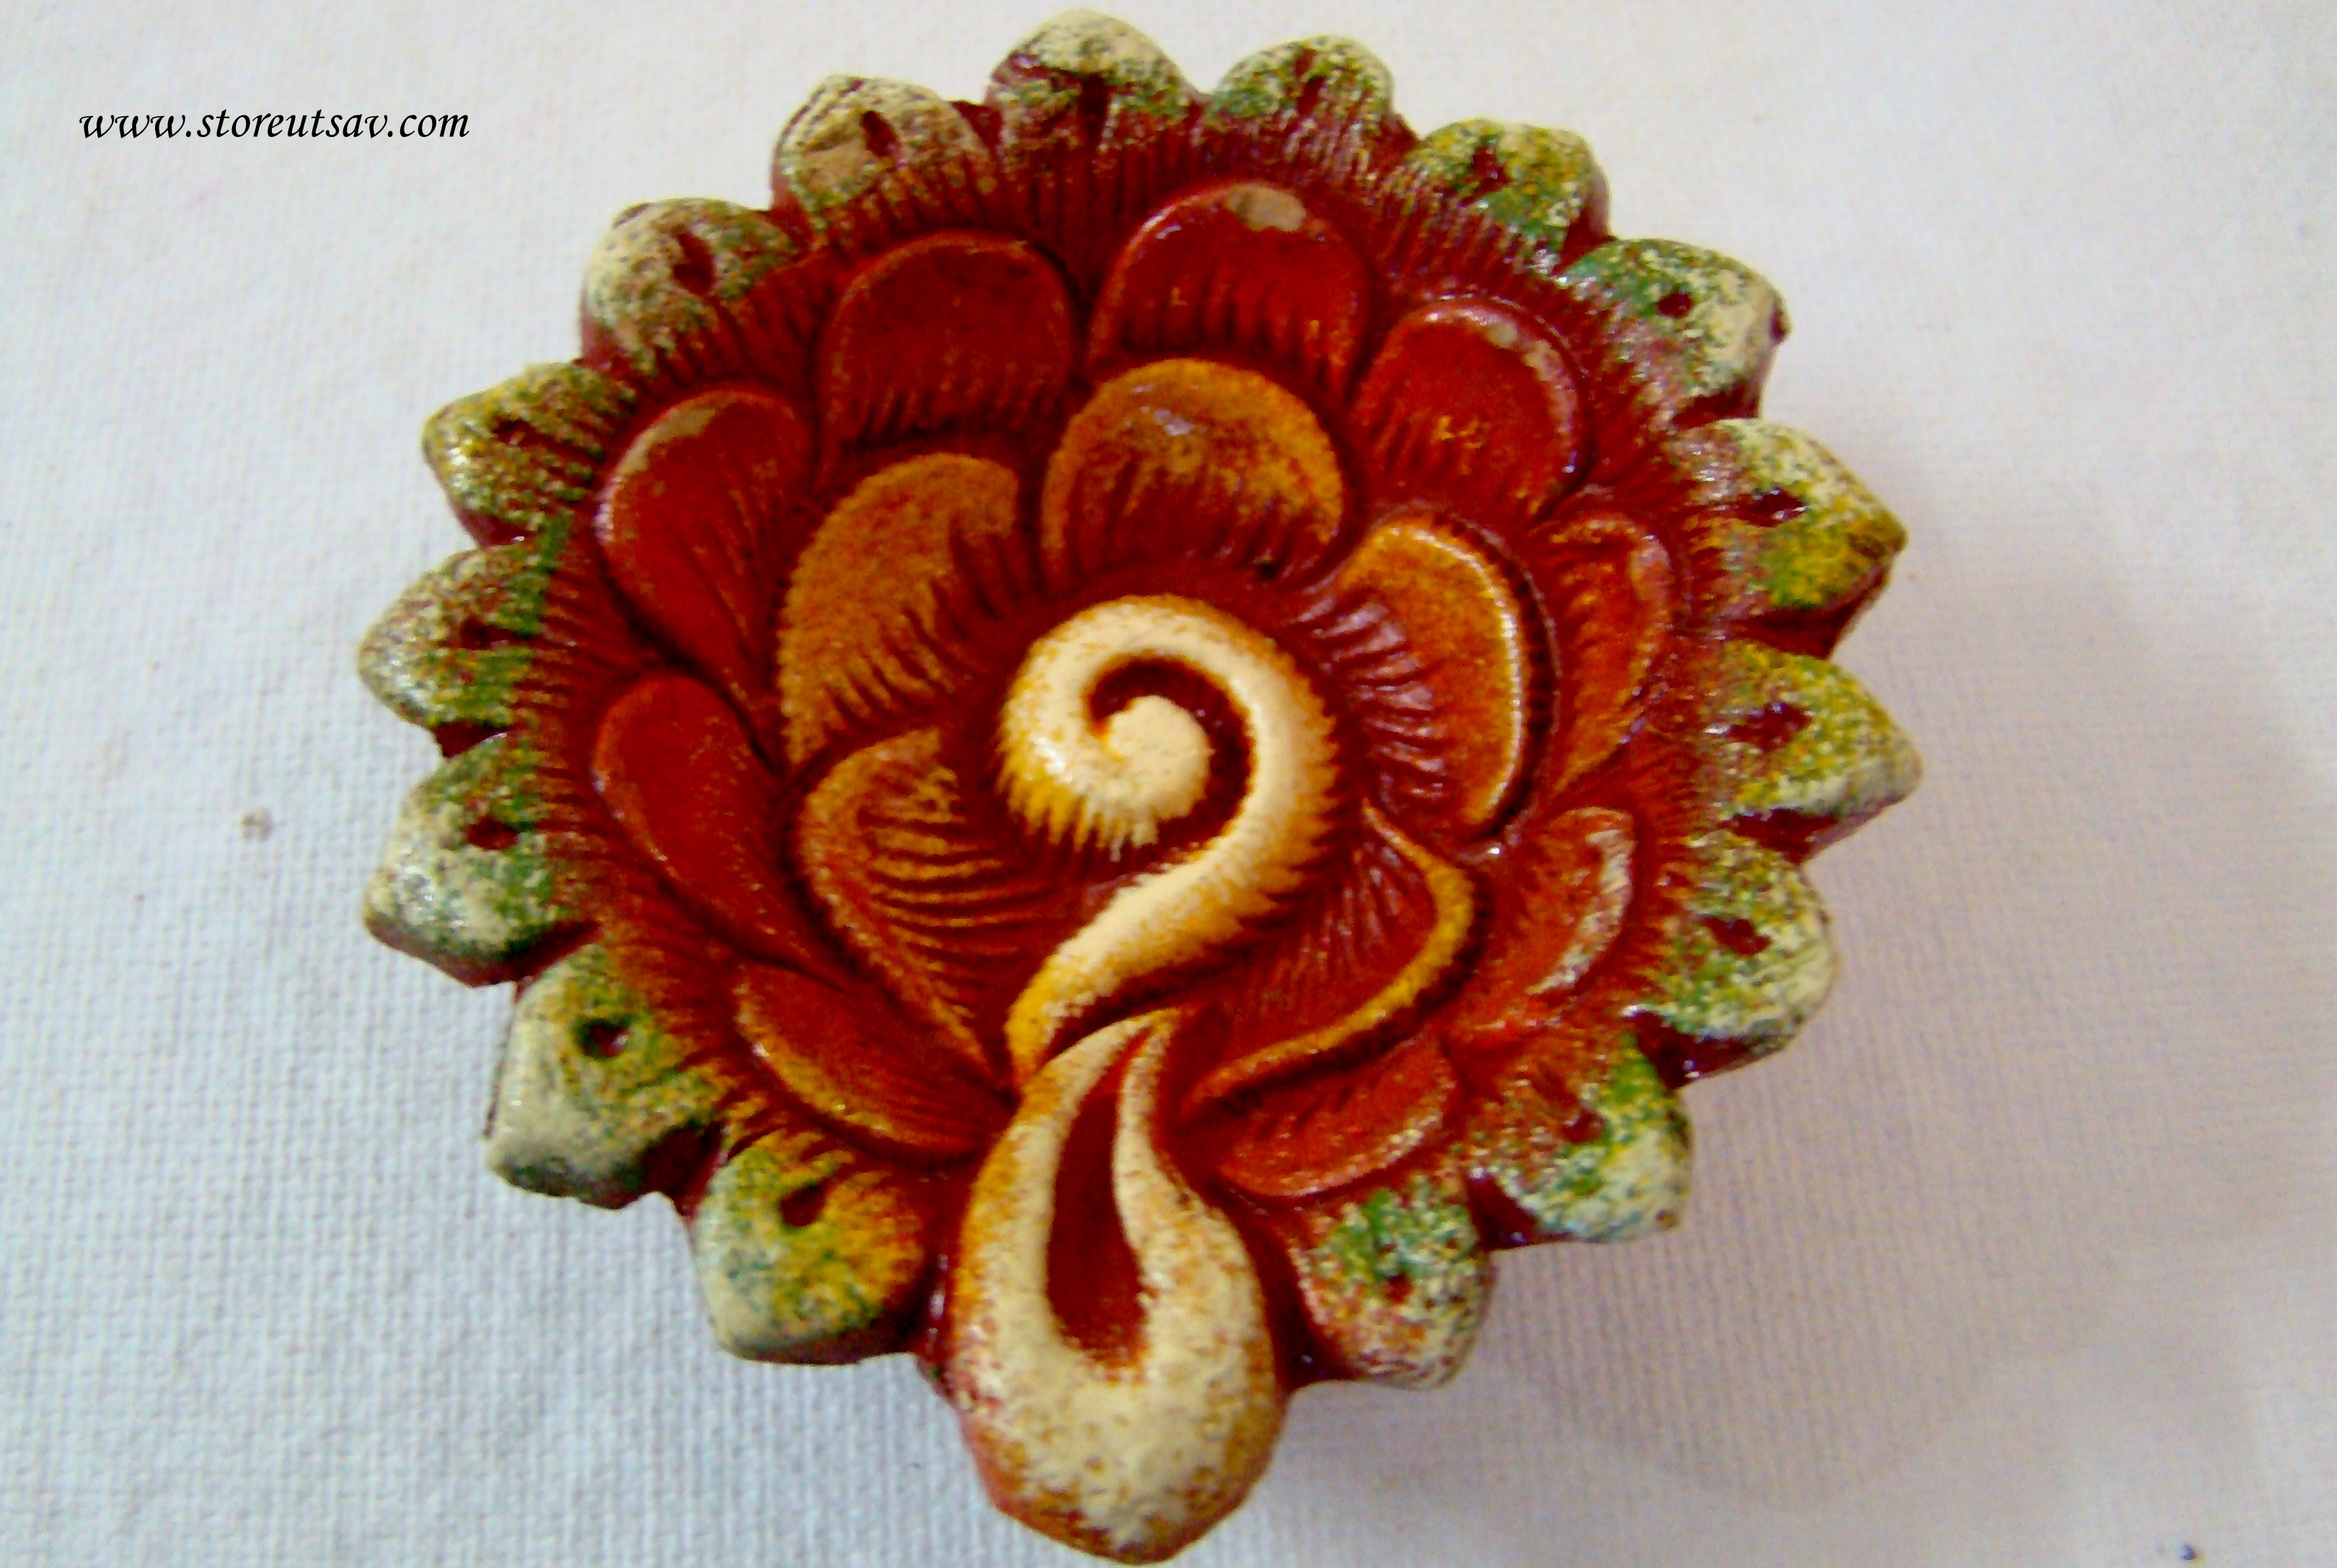 0857ff3f0 Buy Diya Terracotta Small Floral Multicolored - Online Shopping For Diyas  And Lights By Store Utsav Online